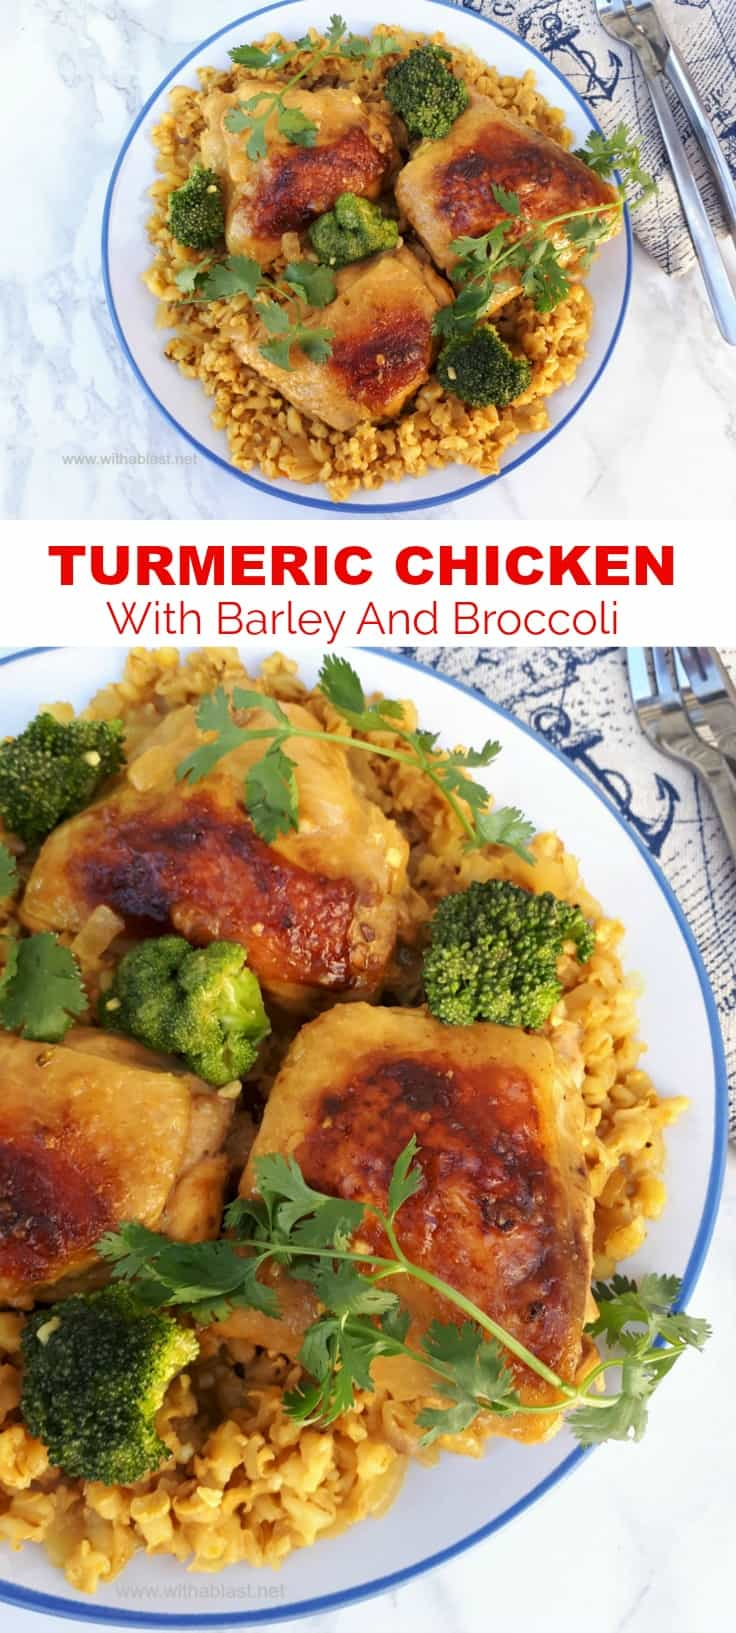 Turmeric Chicken With Barley And Broccoli